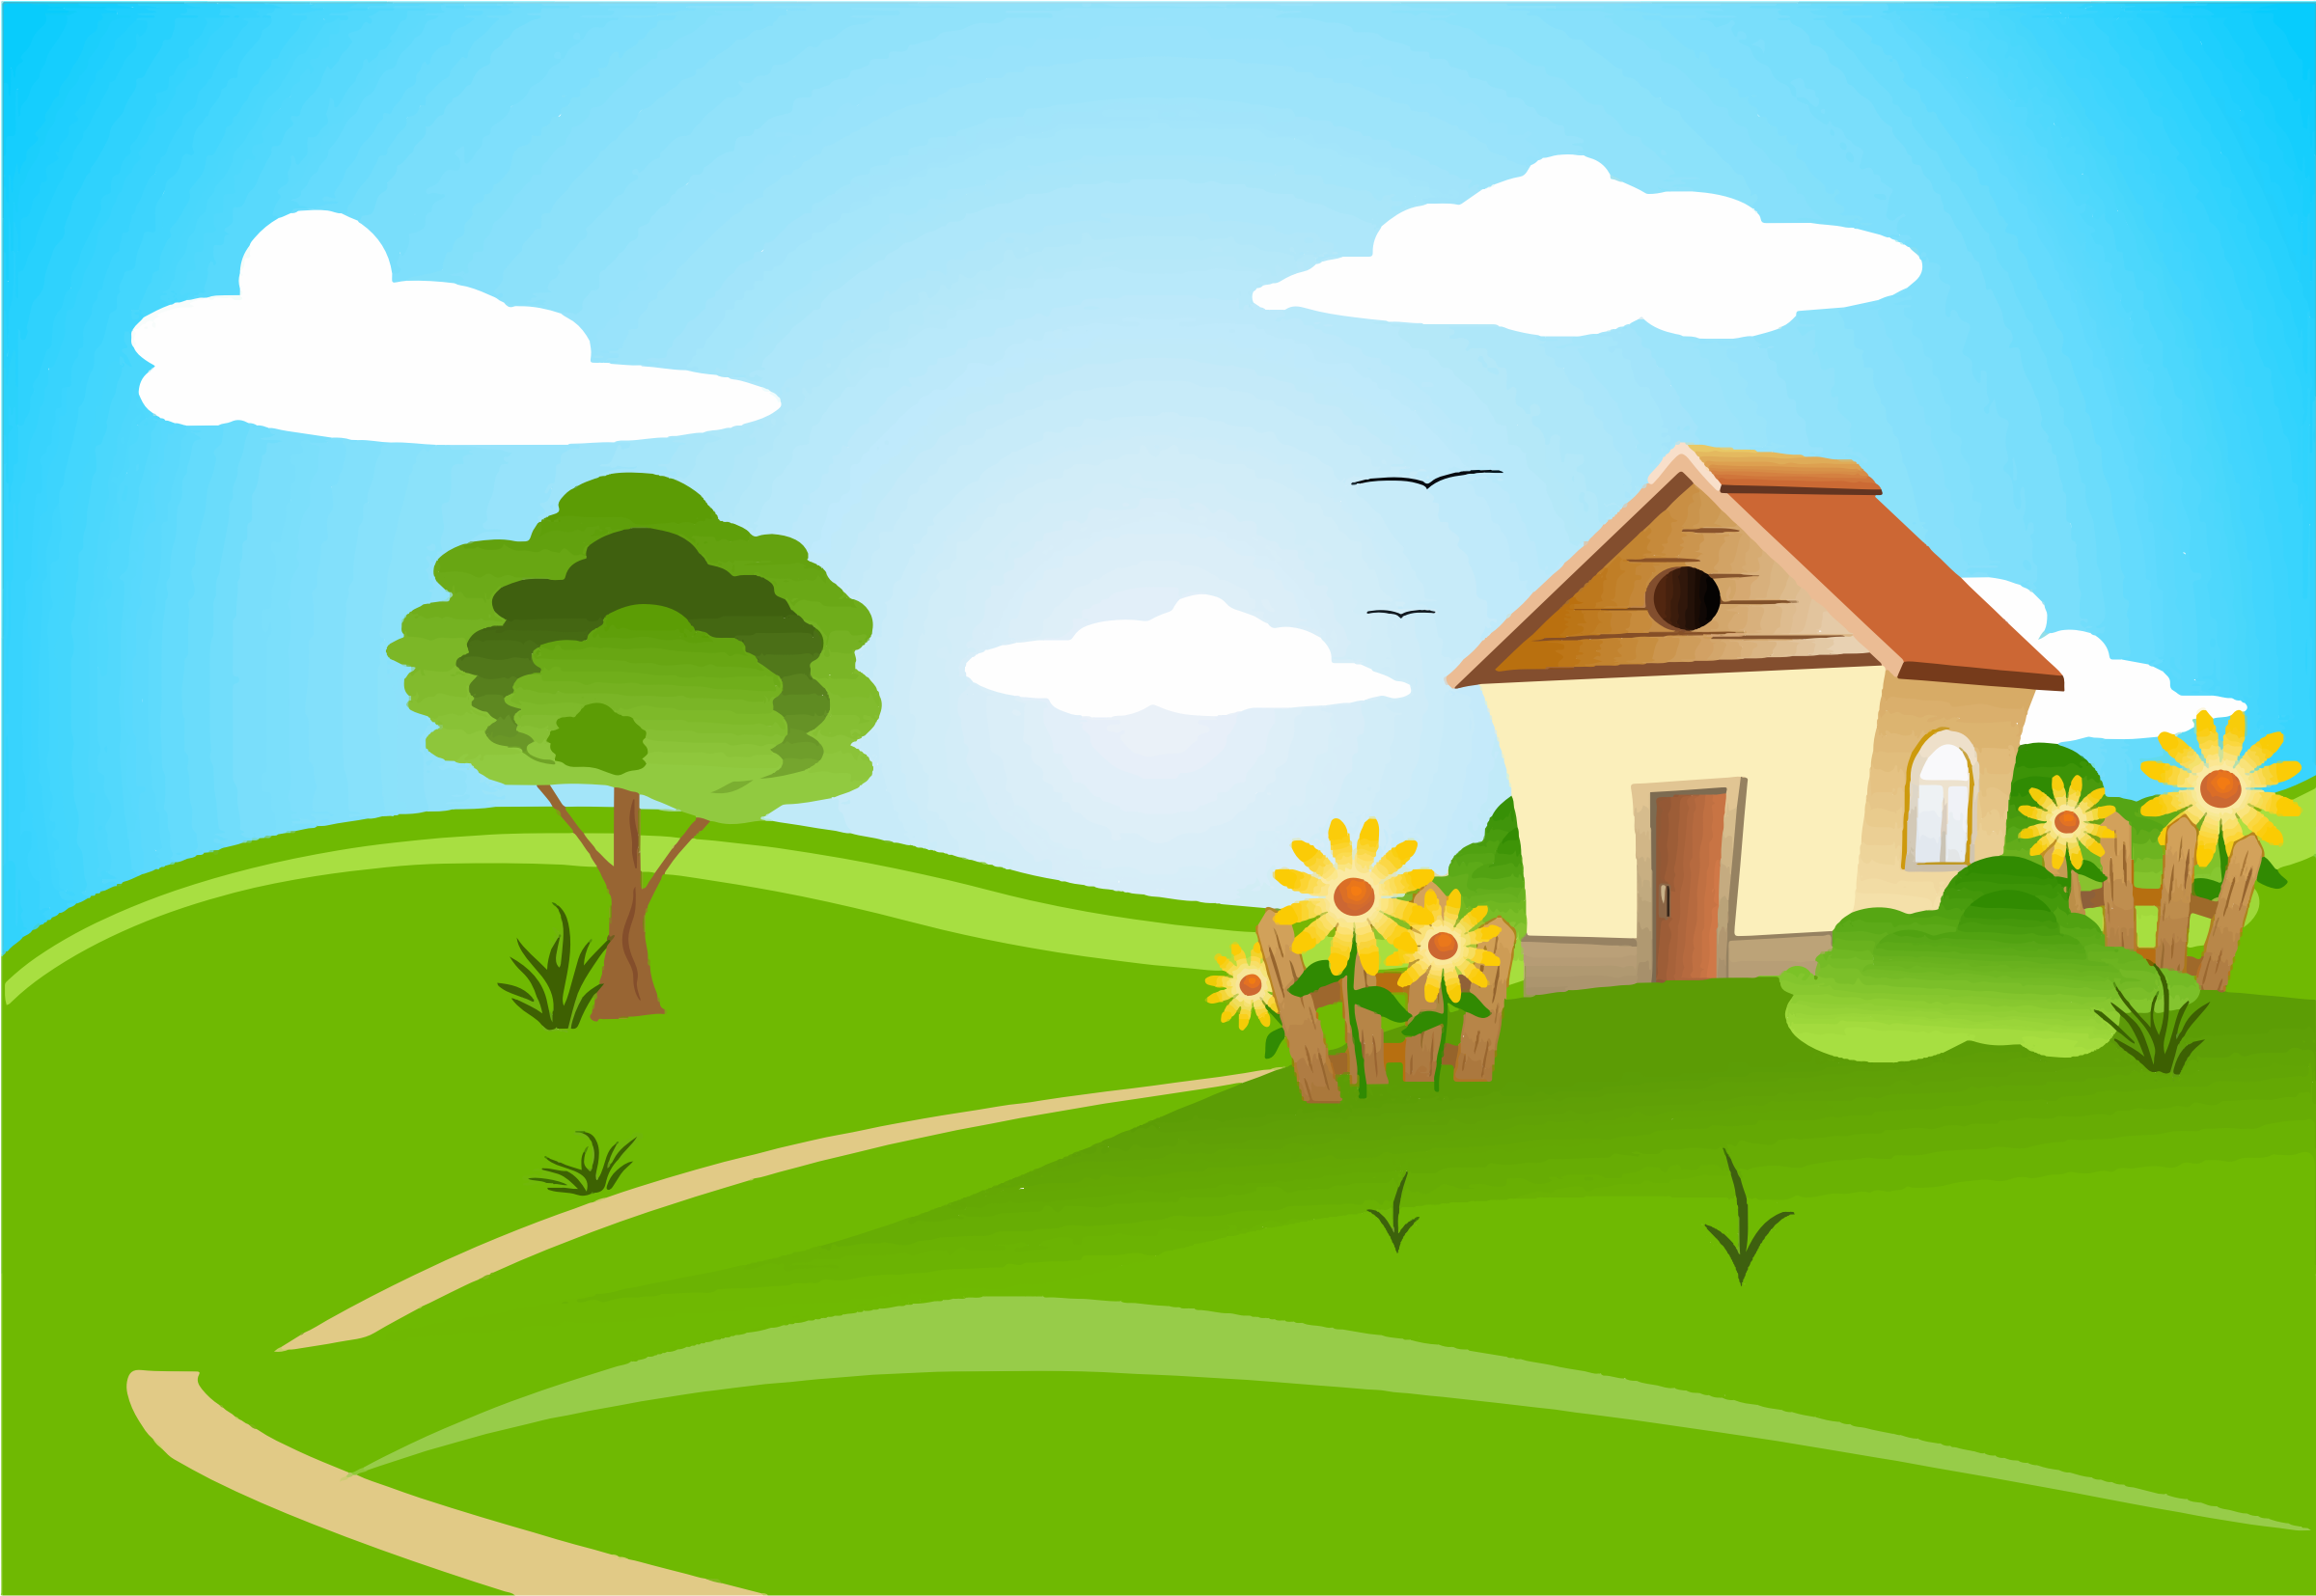 River clipart rolling hills And Clipart Green And Green